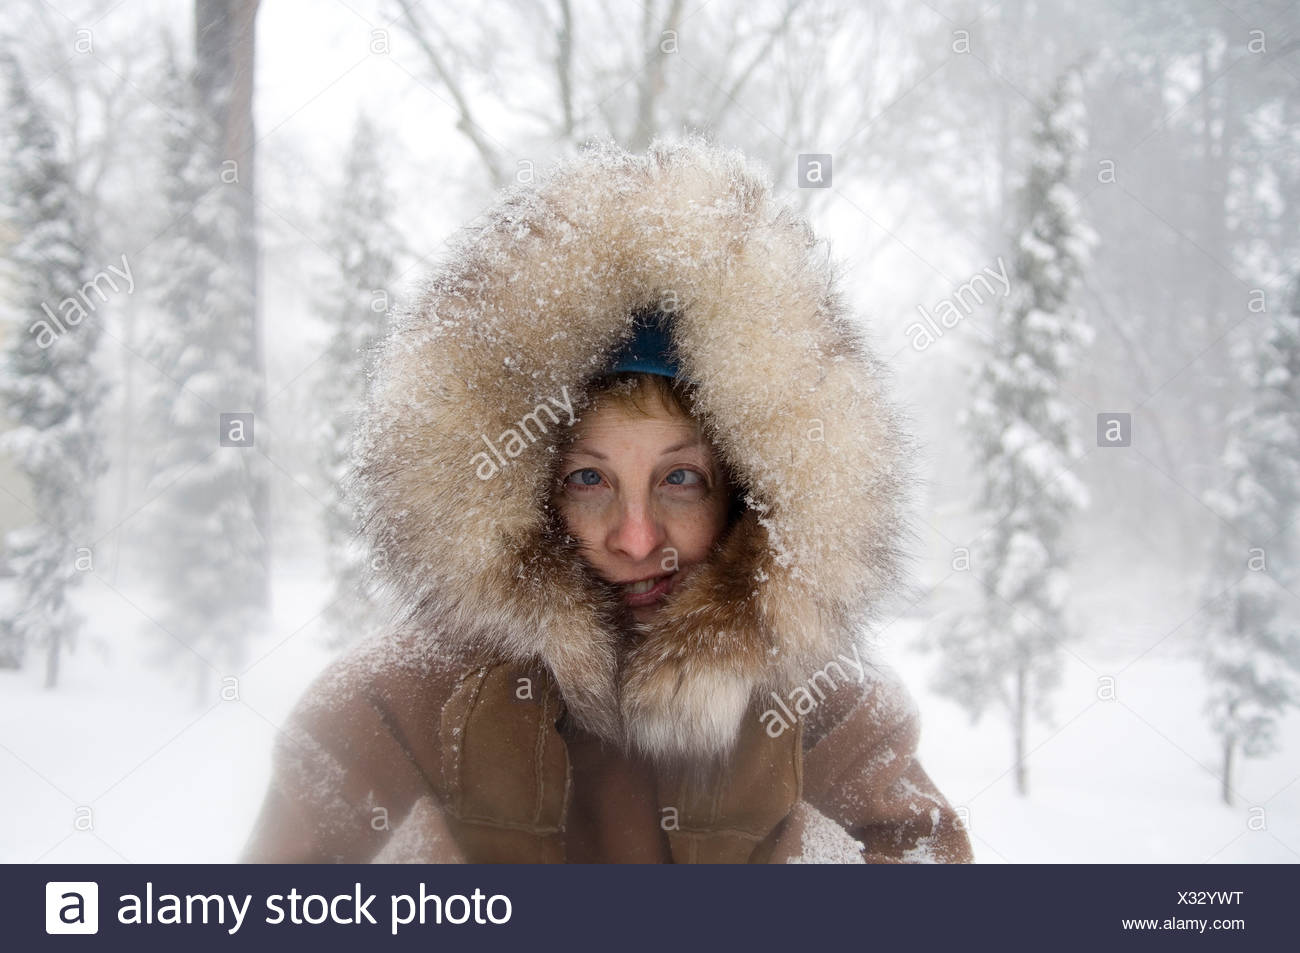 A woman stands outside in a fur-trimmed coat after a snowstorm. - Stock Image